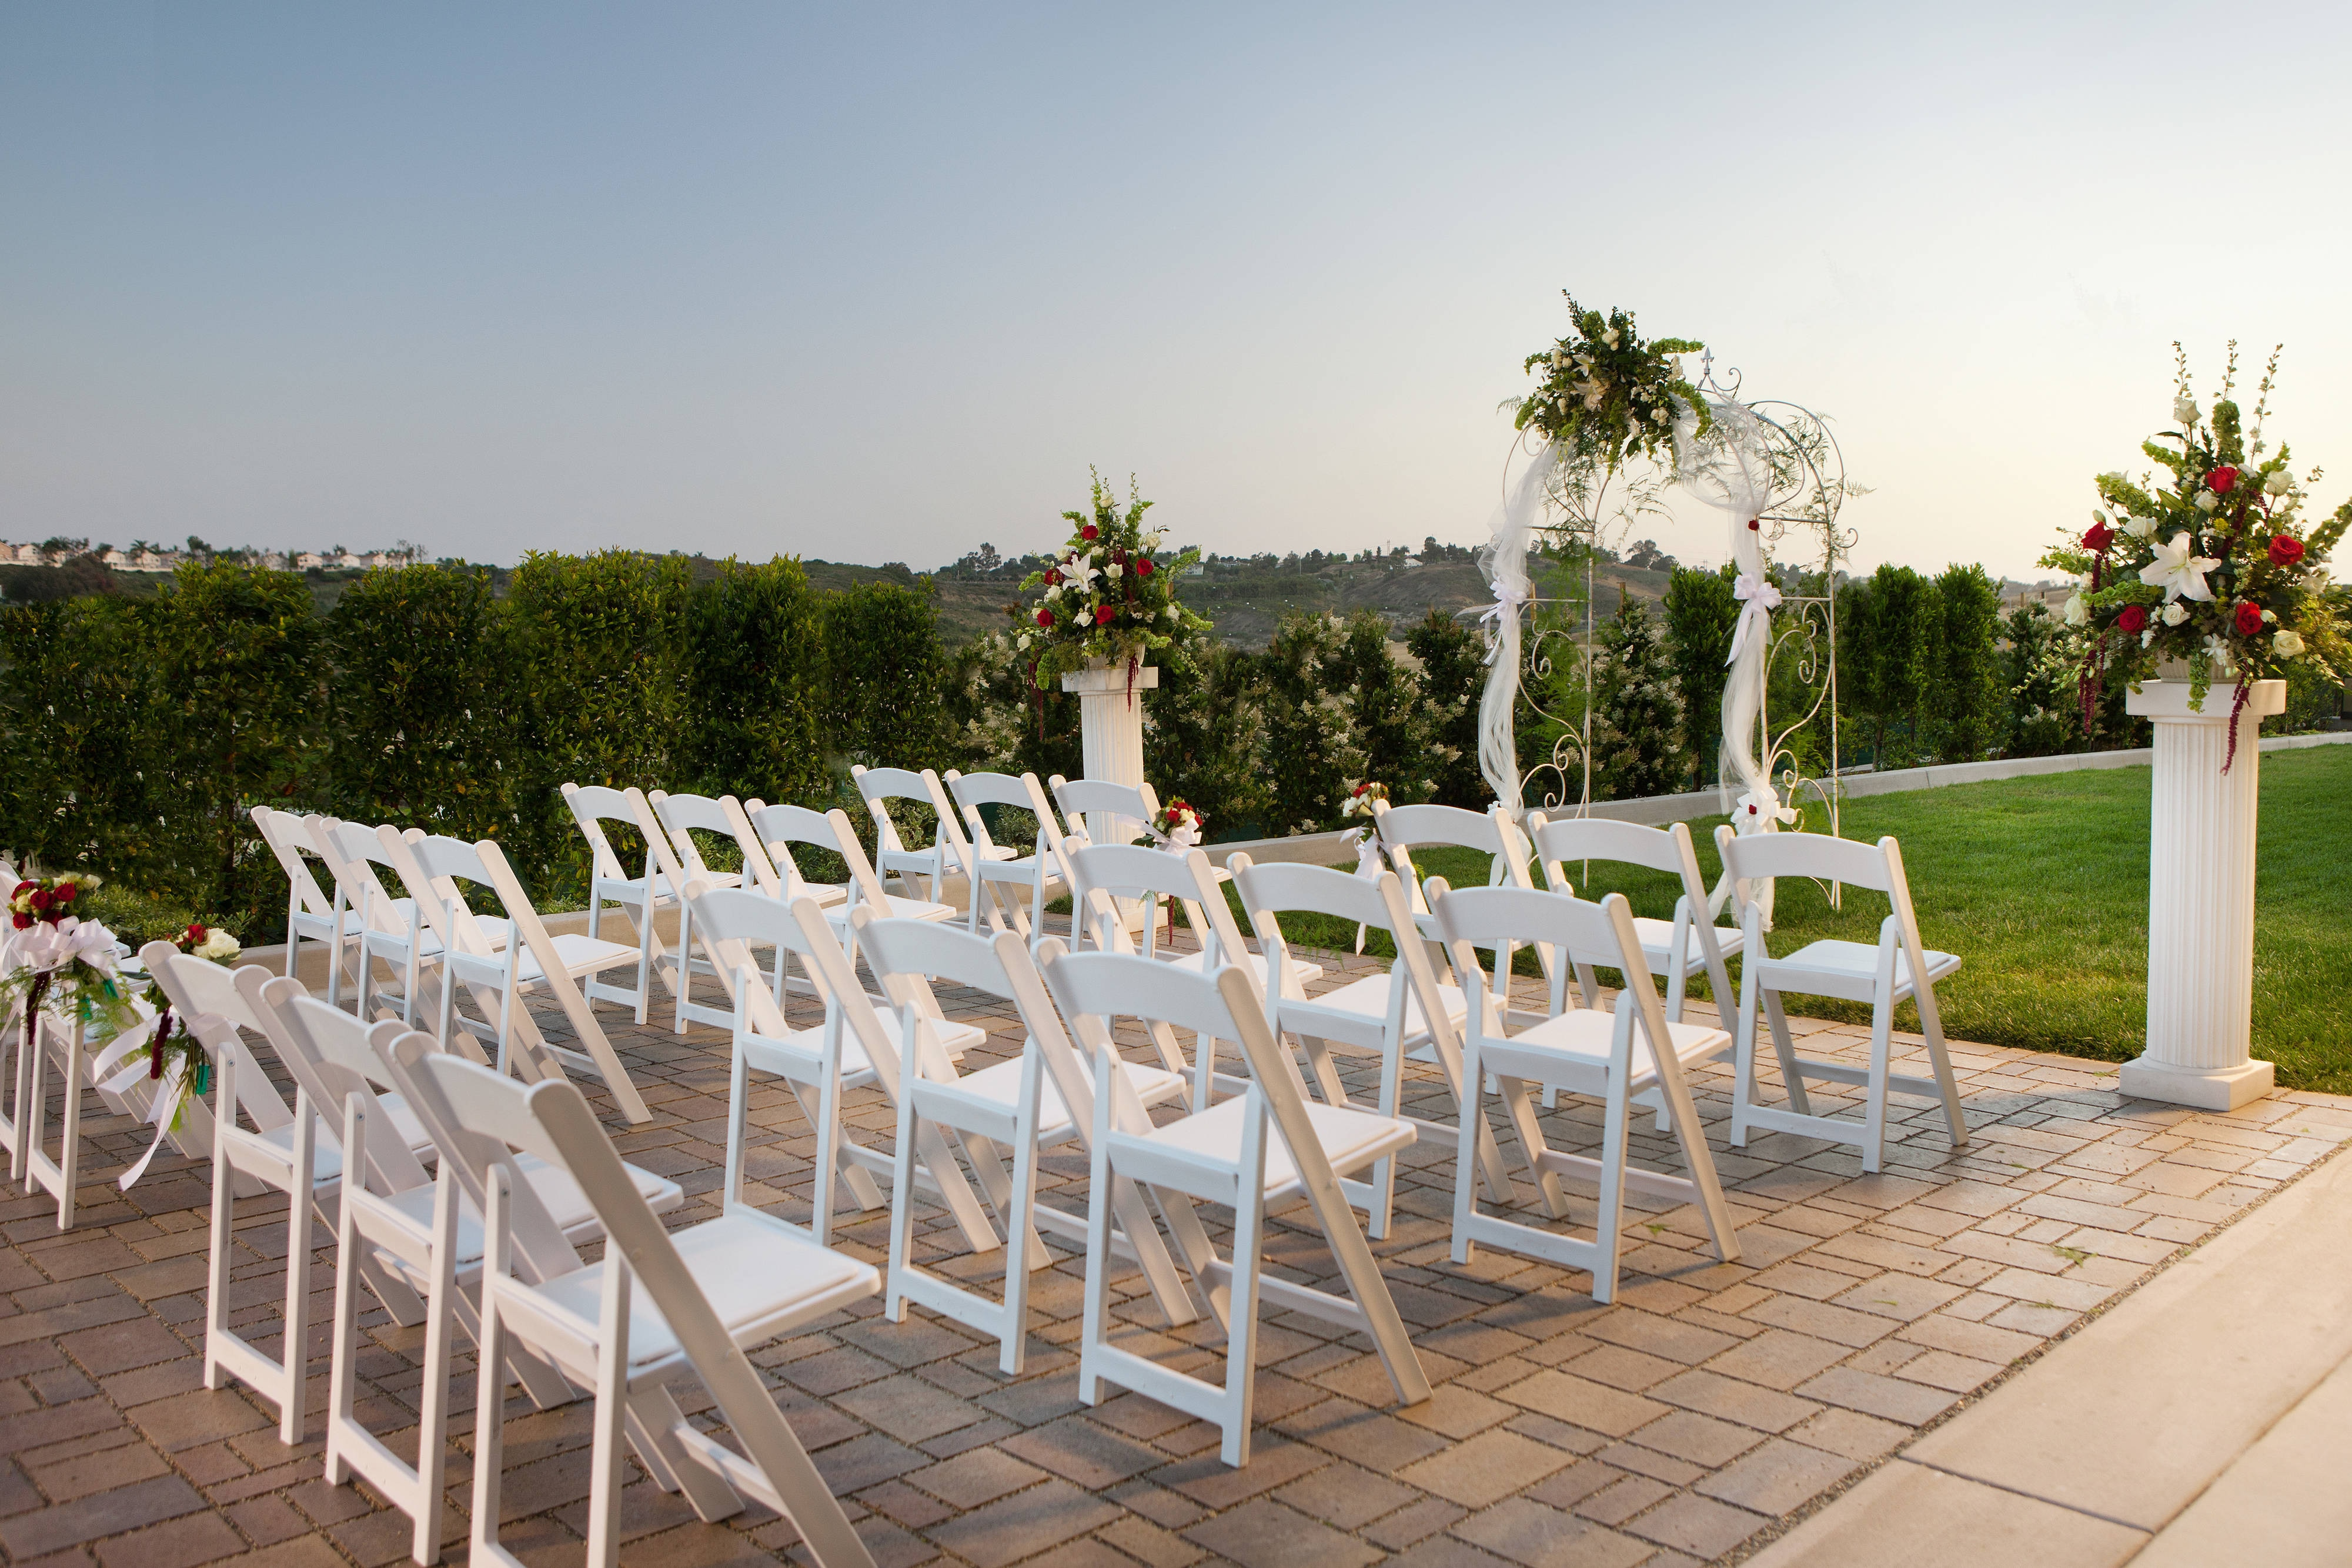 San Diego Hotel wedding venue